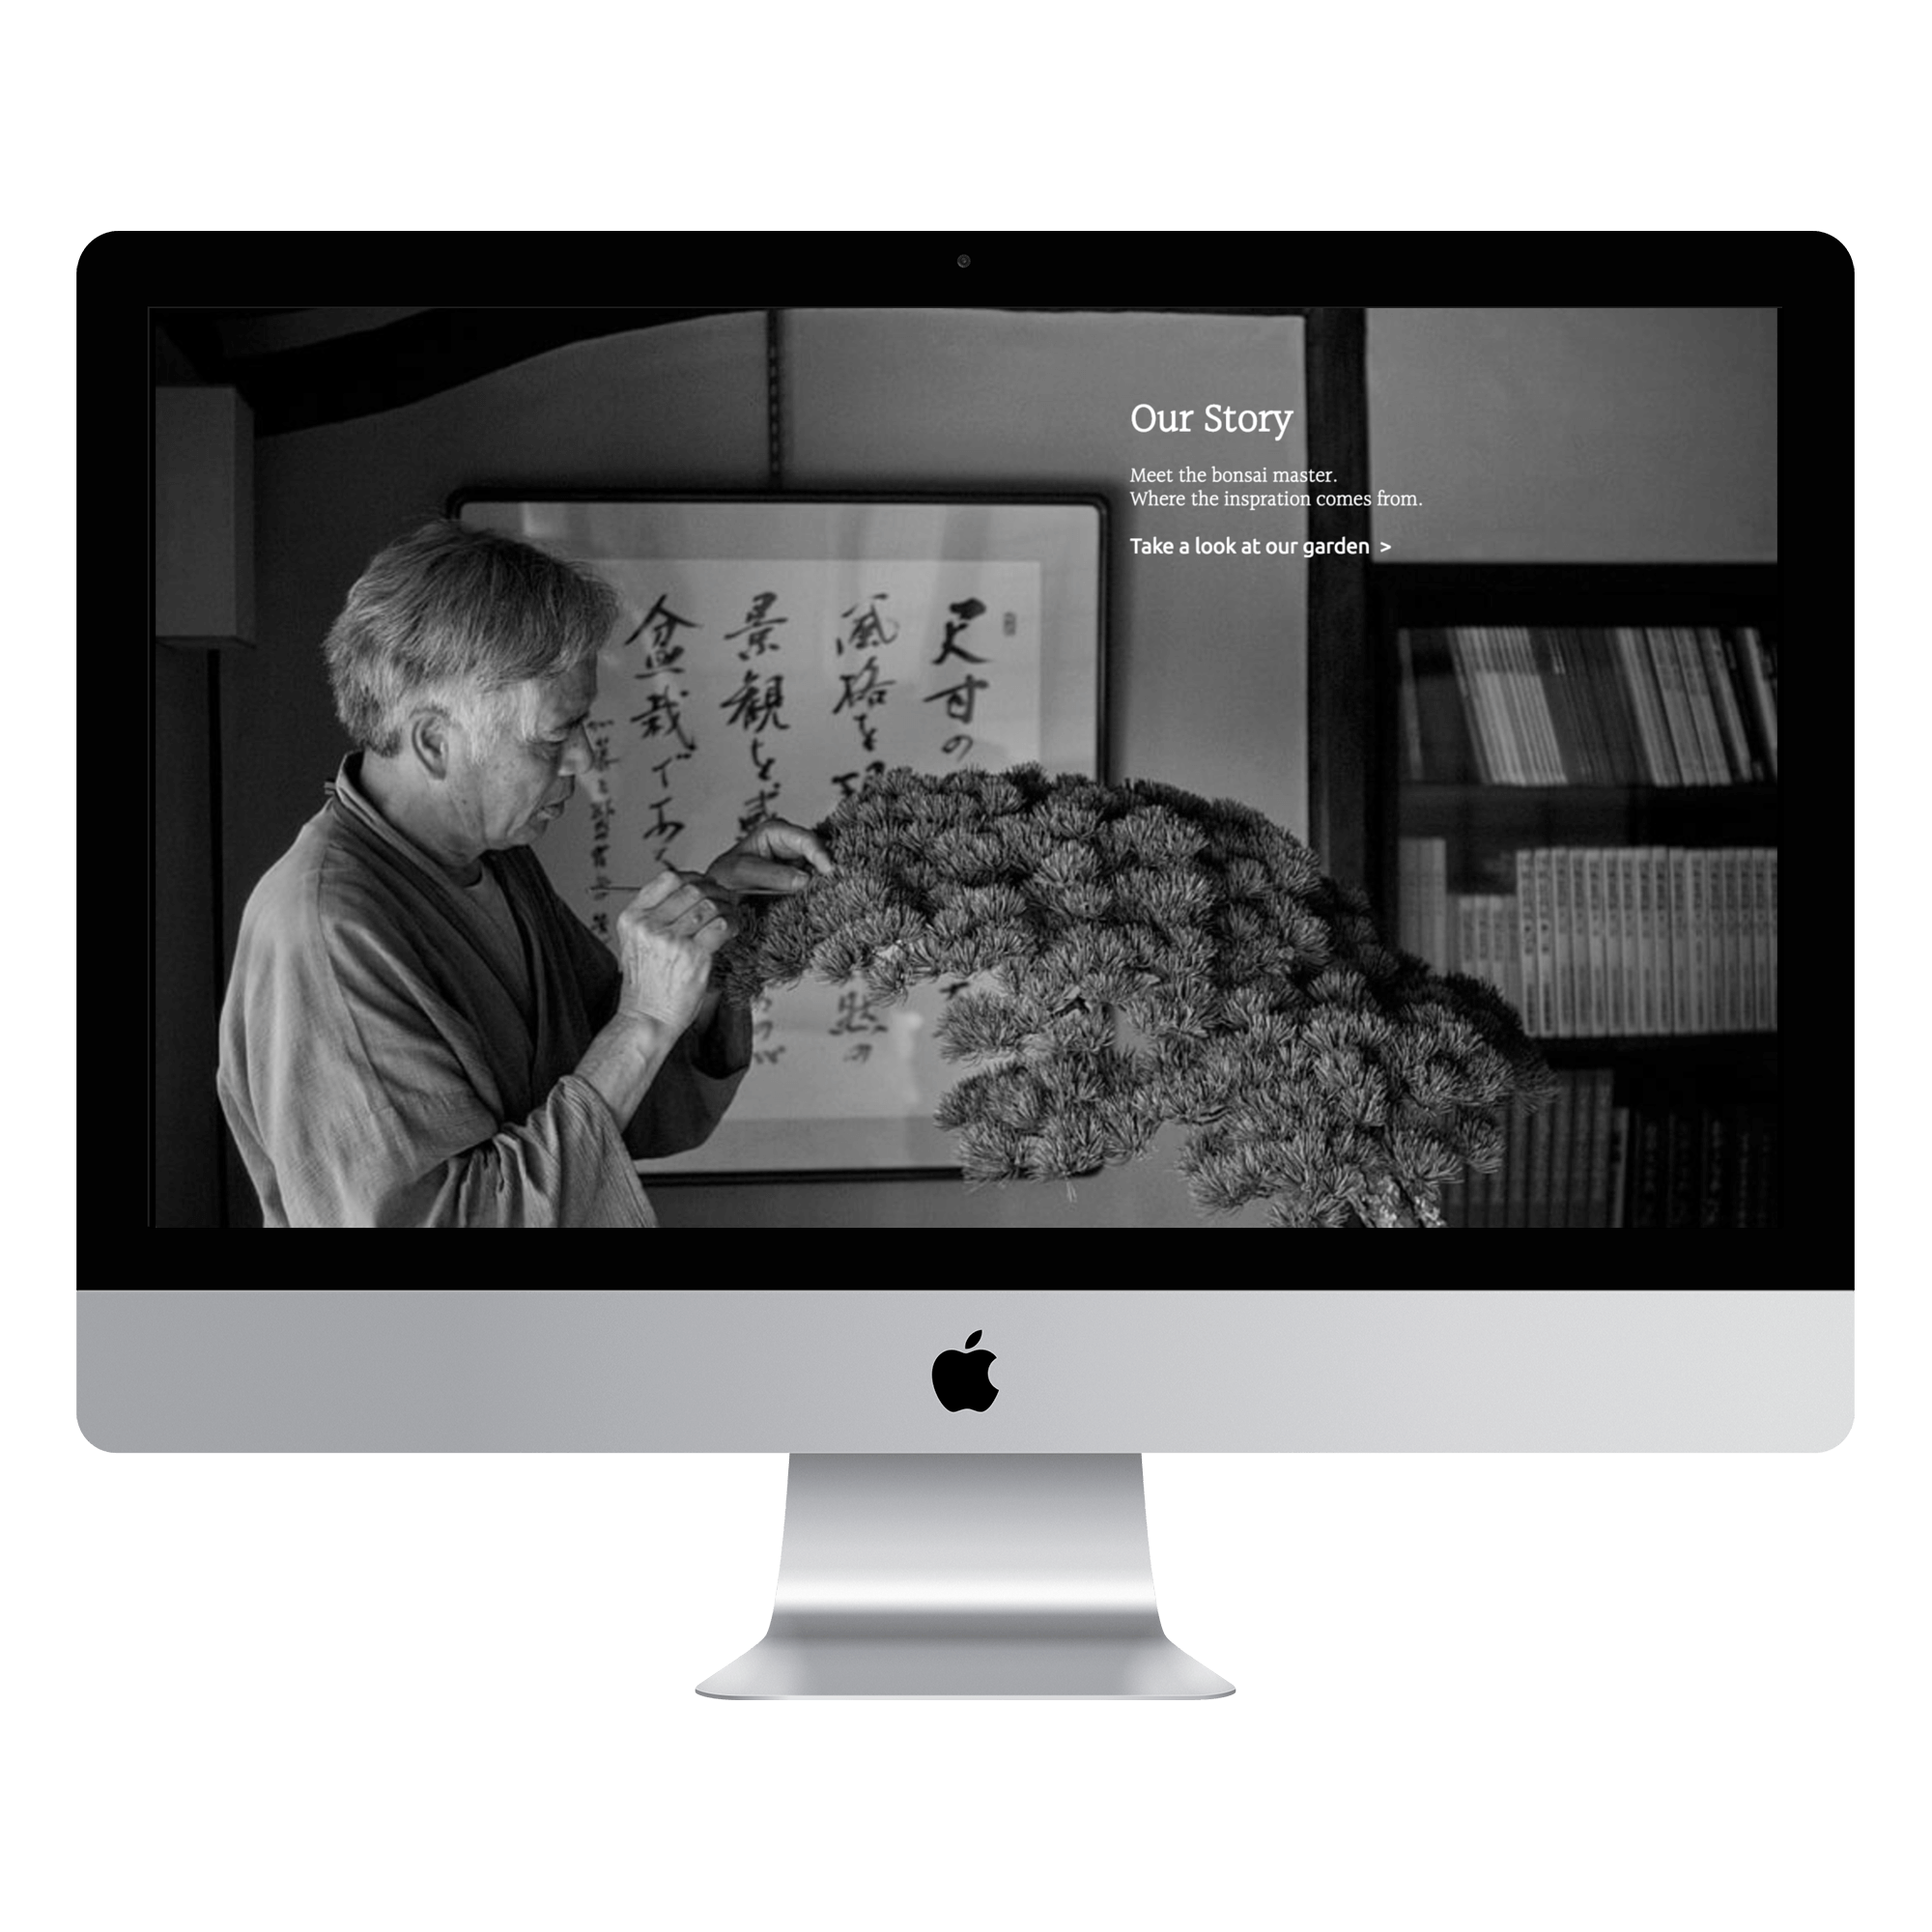 website of Dream of Bonsai is shown on MacBook